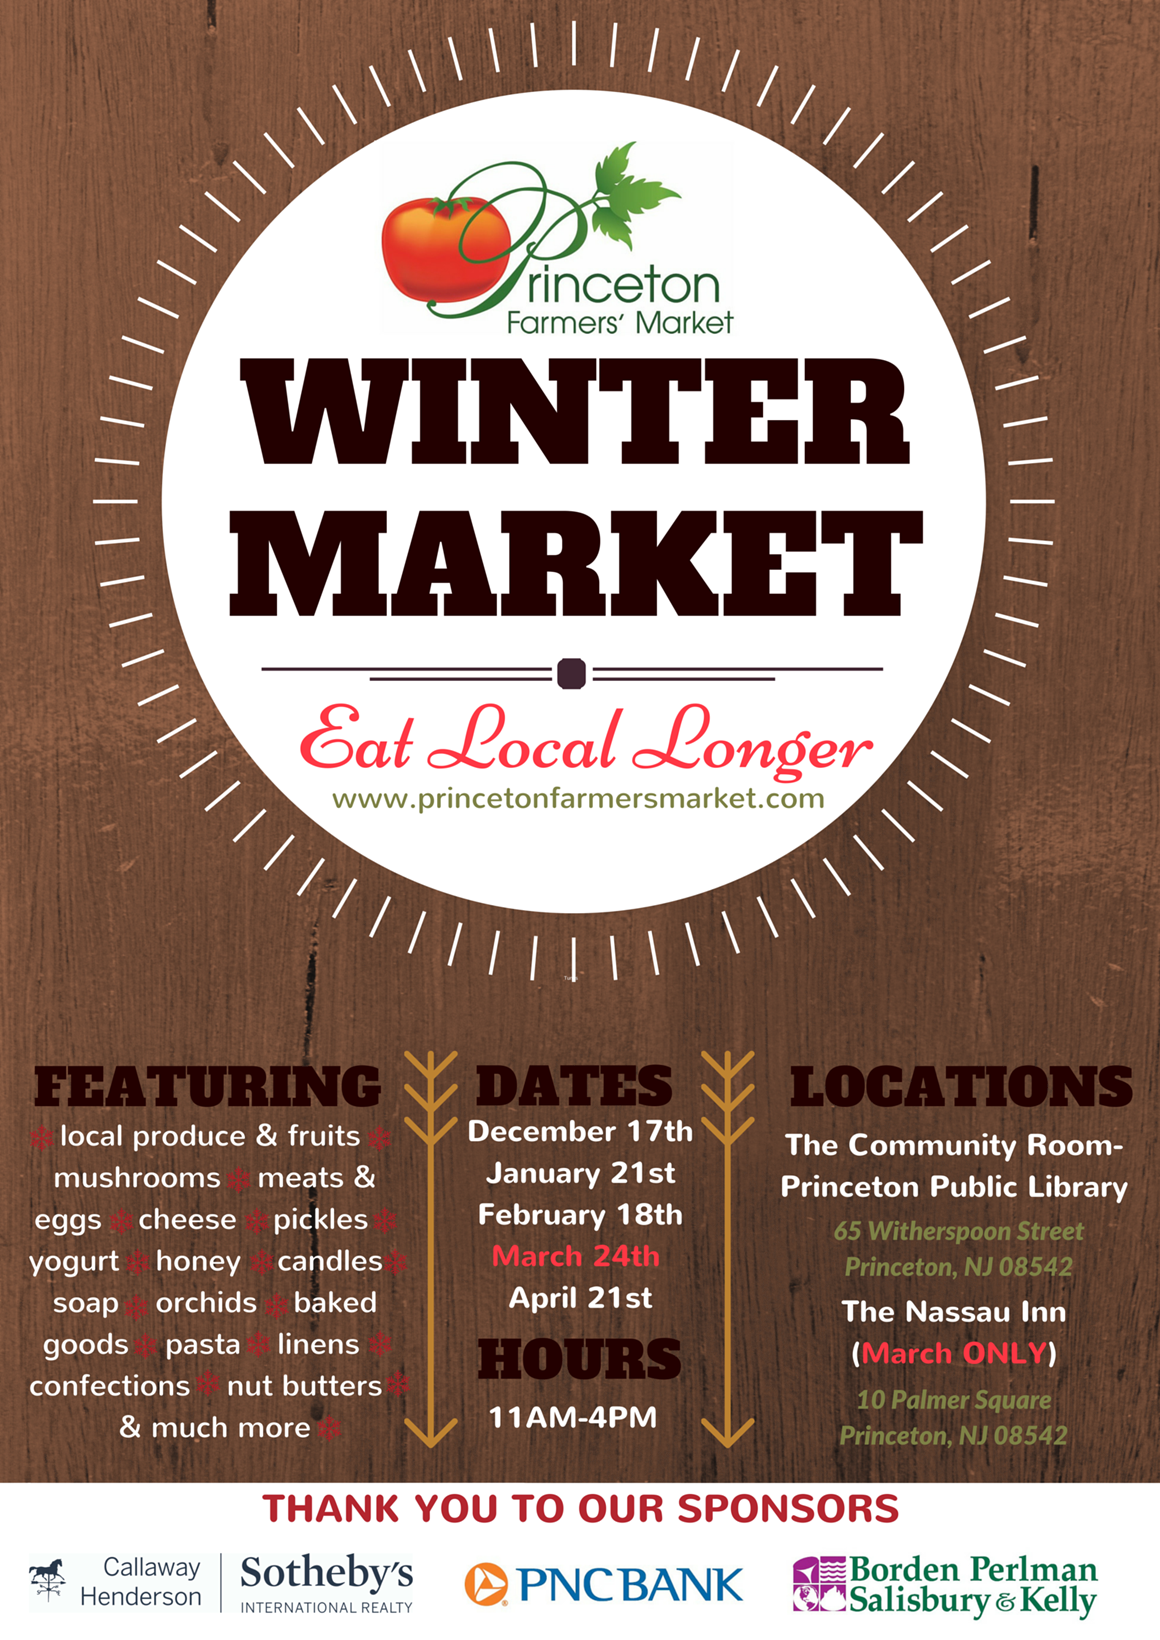 Winter Market Dates & Vendors ~ Princeton Farmers' Market